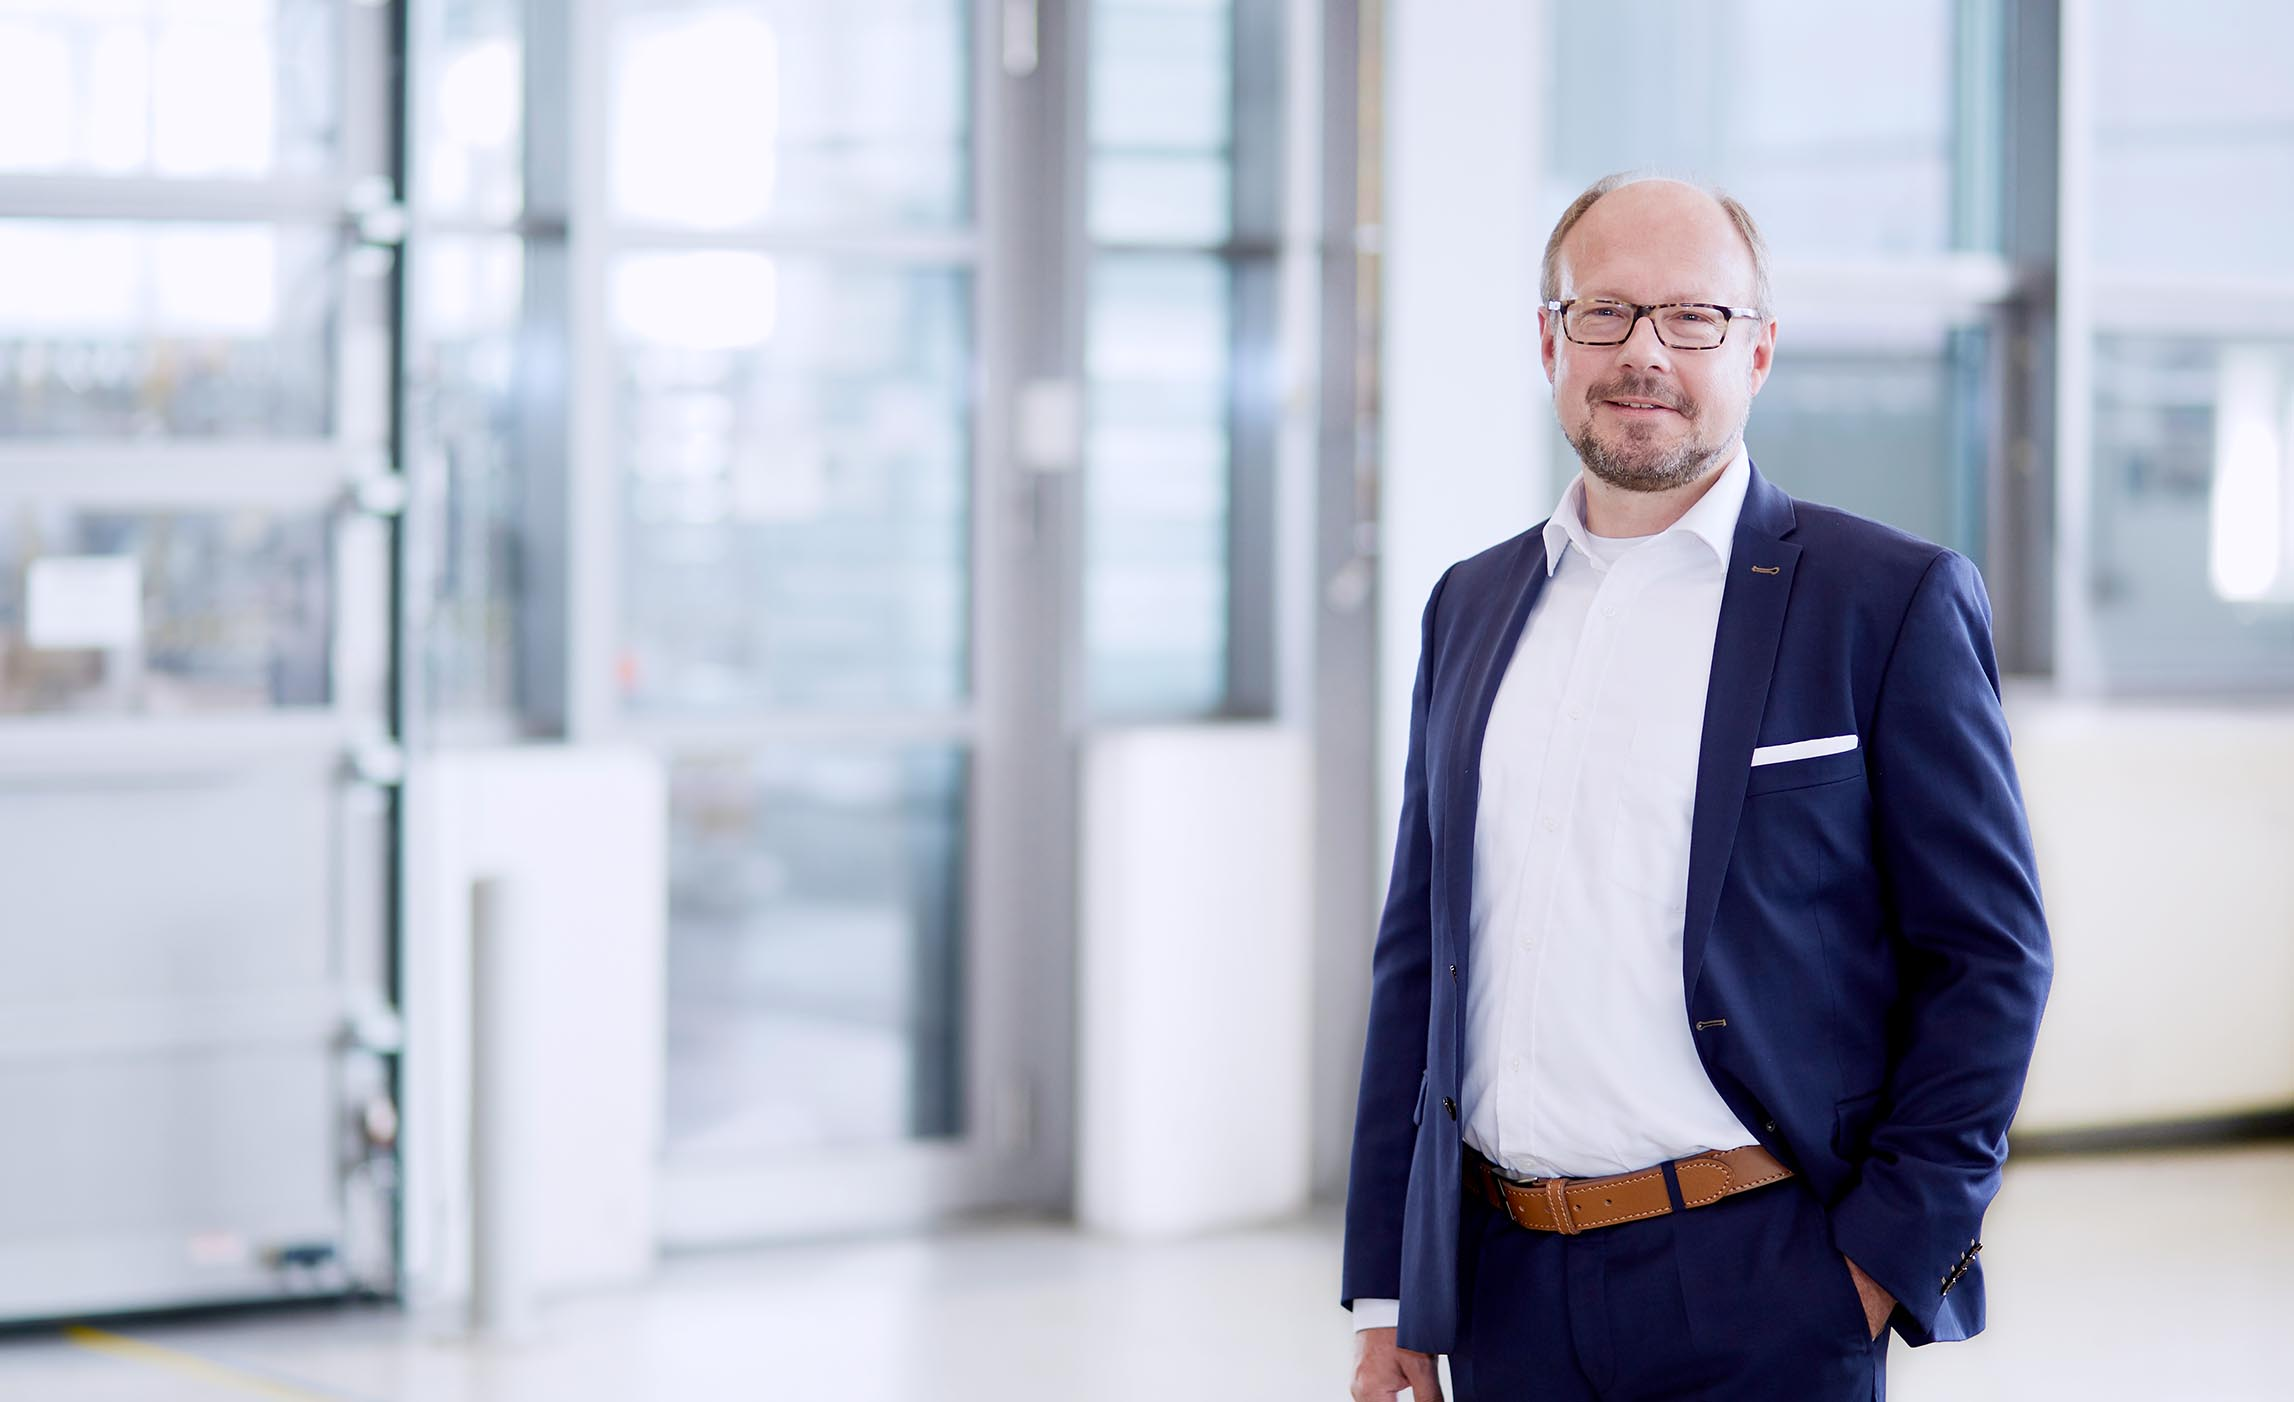 Jan Grube, Senior Sales Manager